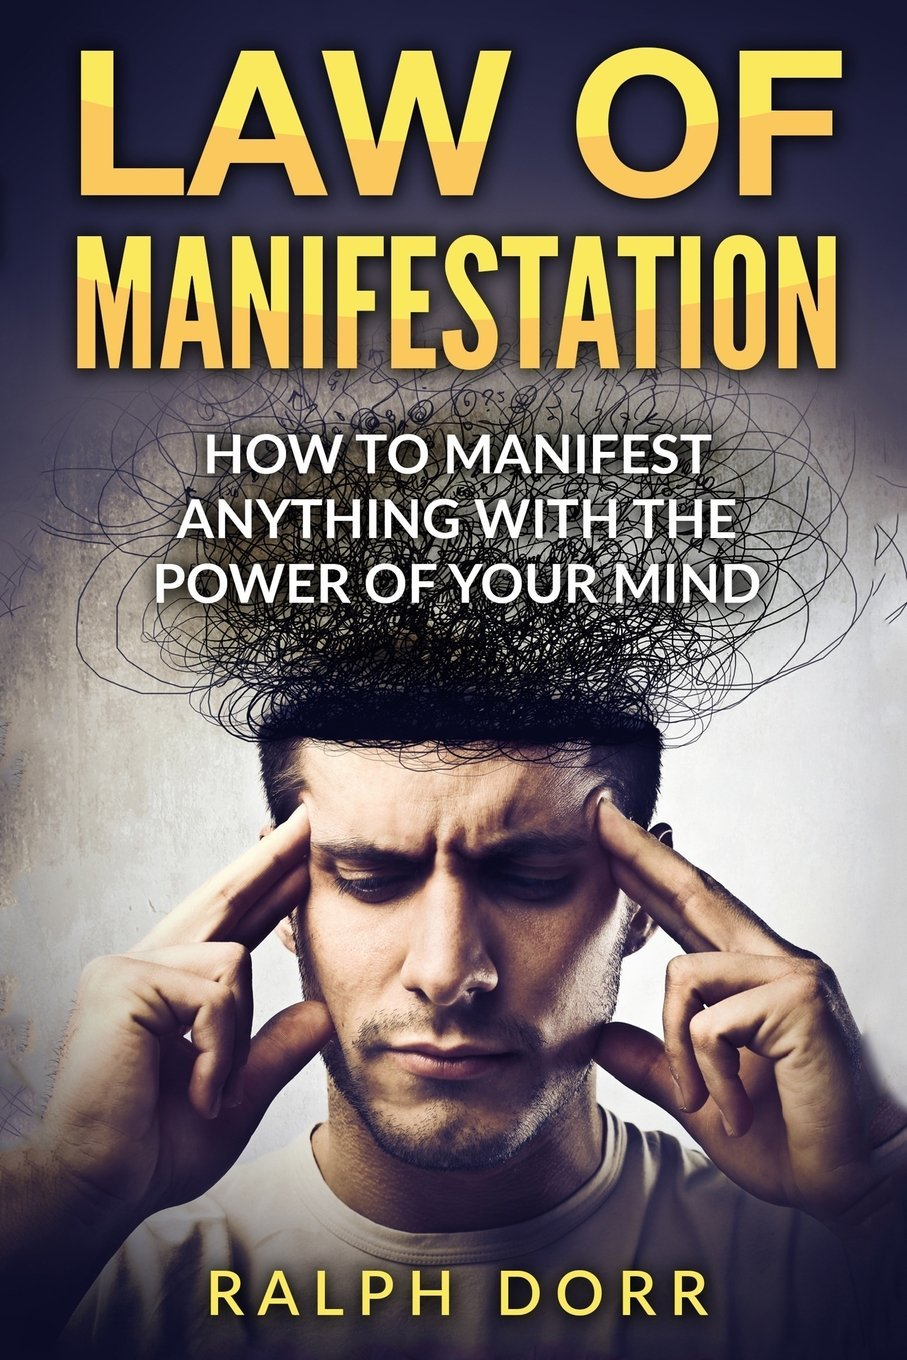 Law Of Manifestation: How To Manifest Anything With The Power Of Your Mind (Manifest Money, Manifest Love, Law Of Attraction, Positive Thinking) pdf